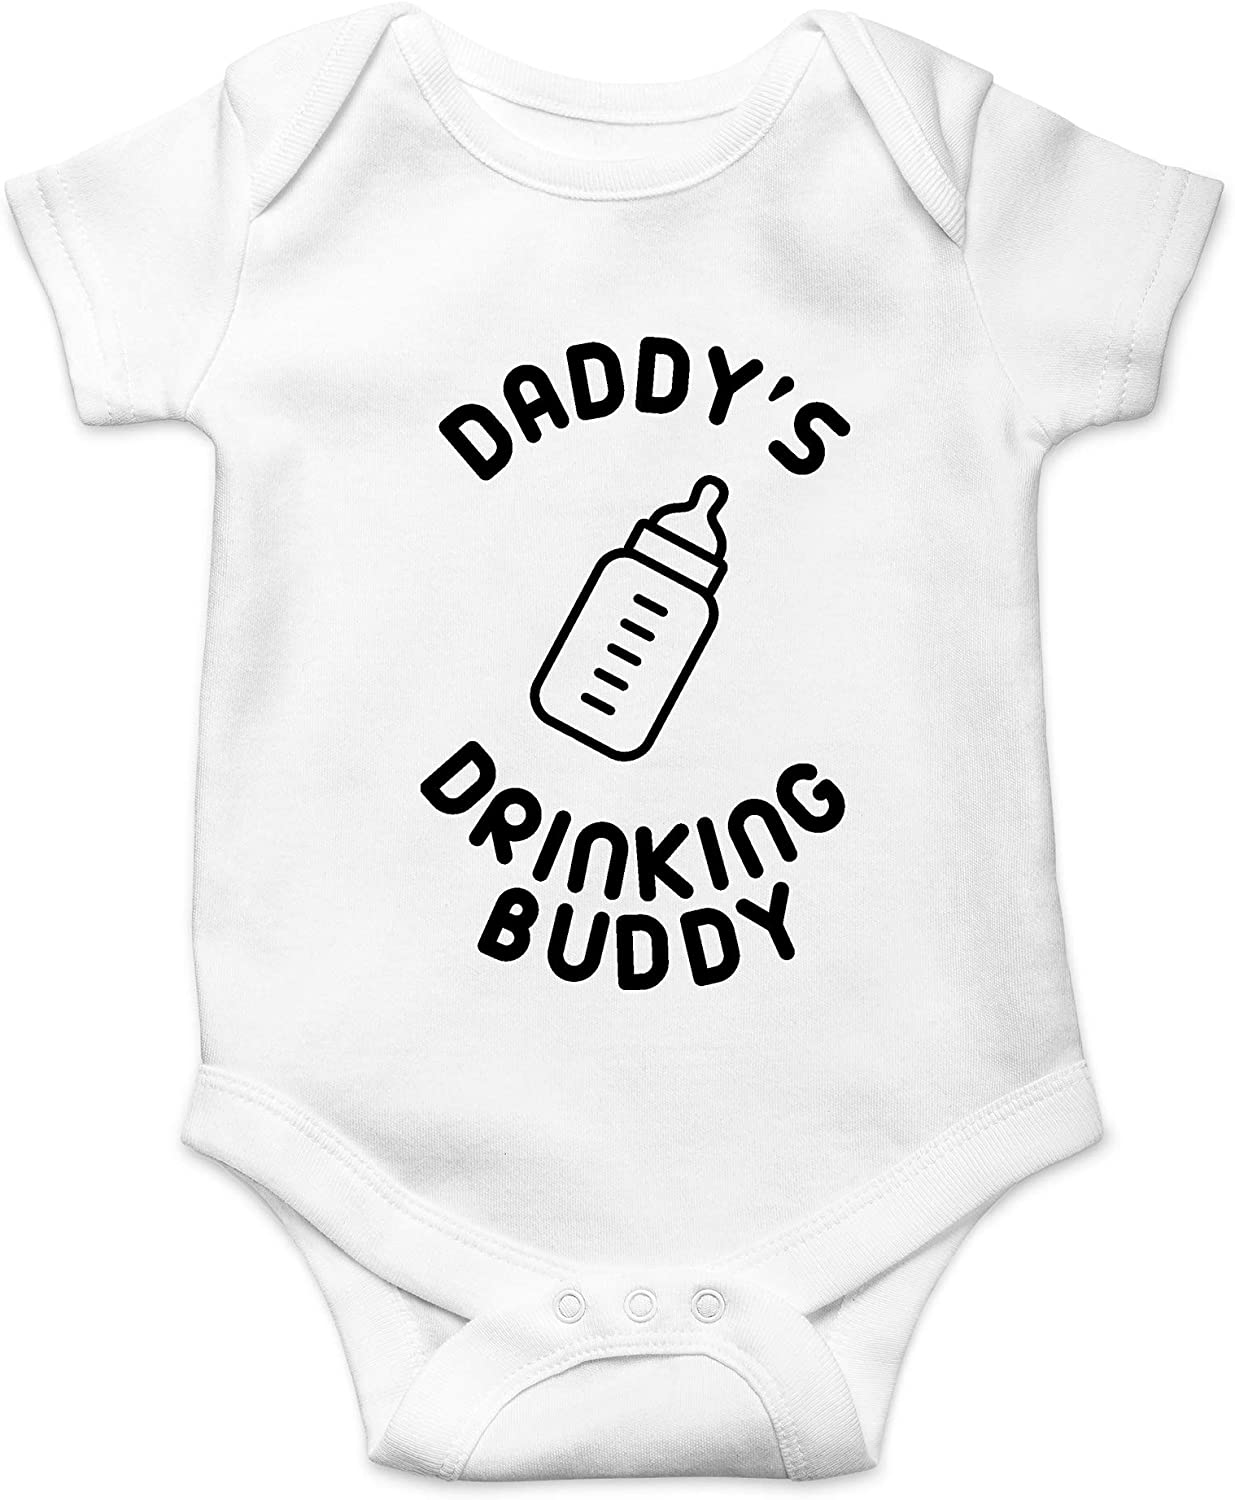 Crazy Bros Tee's Daddy's Drinking Buddy Funny Cute Novelty Infant One-Piece Baby Bodysuit